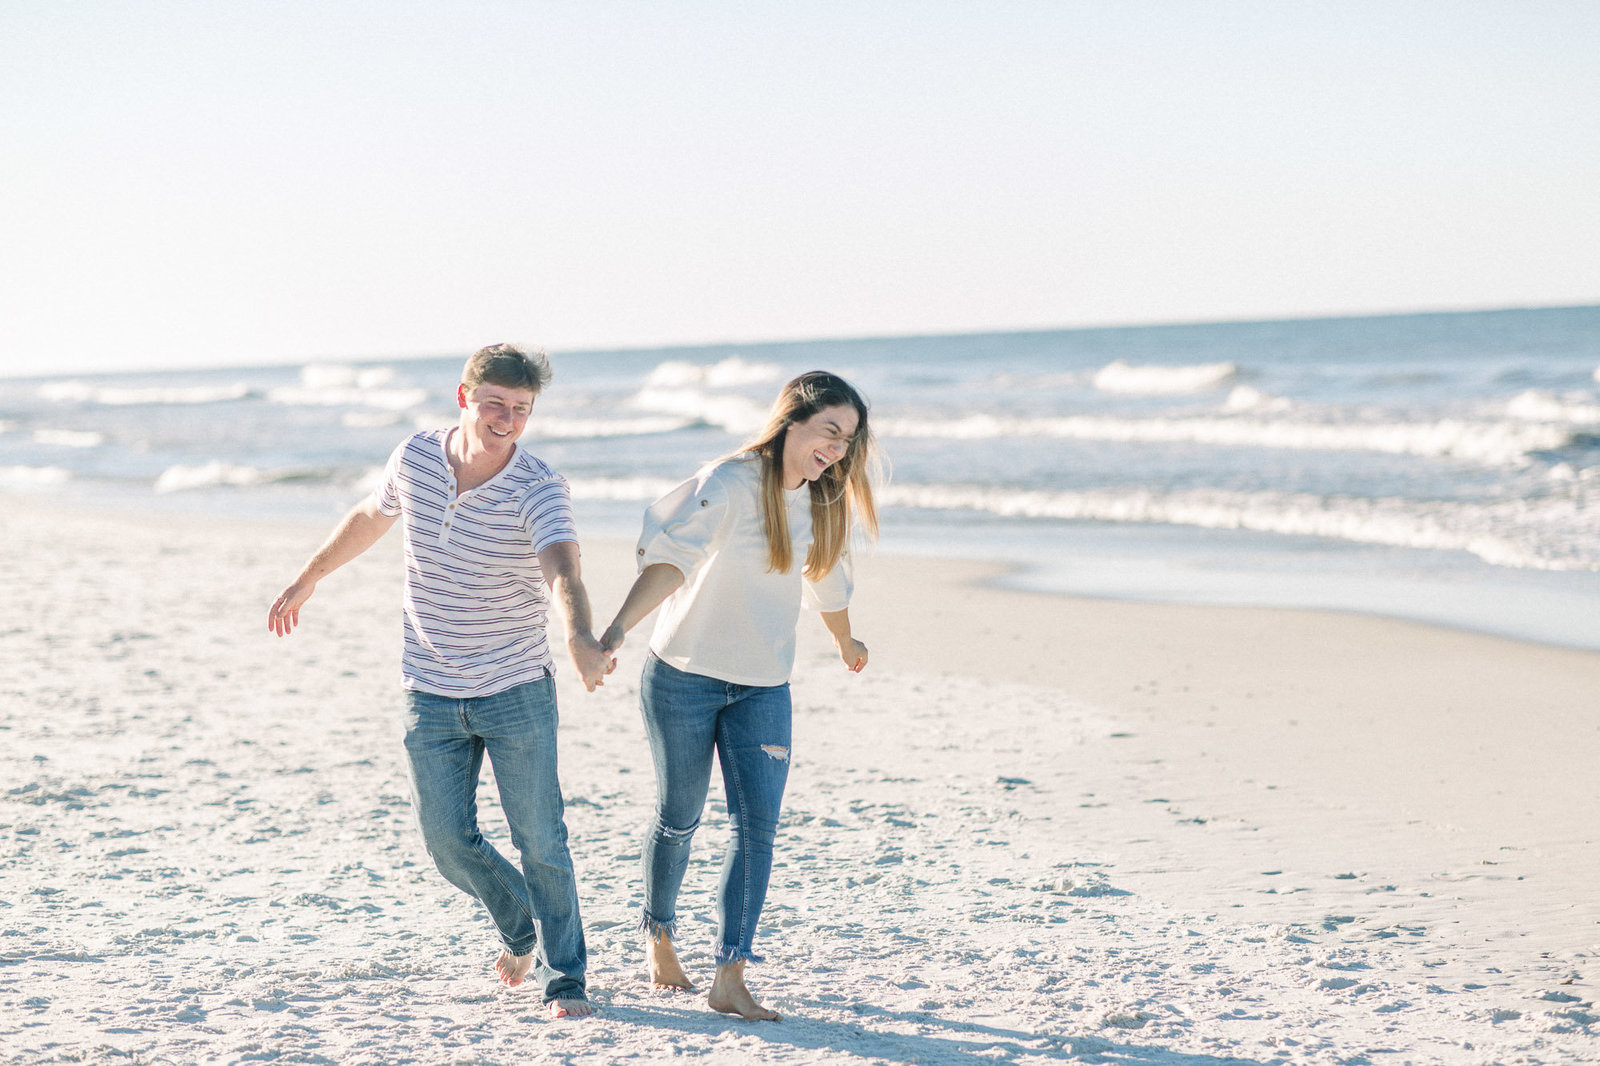 Laughing and running down the beach captured by Staci Addison Photography